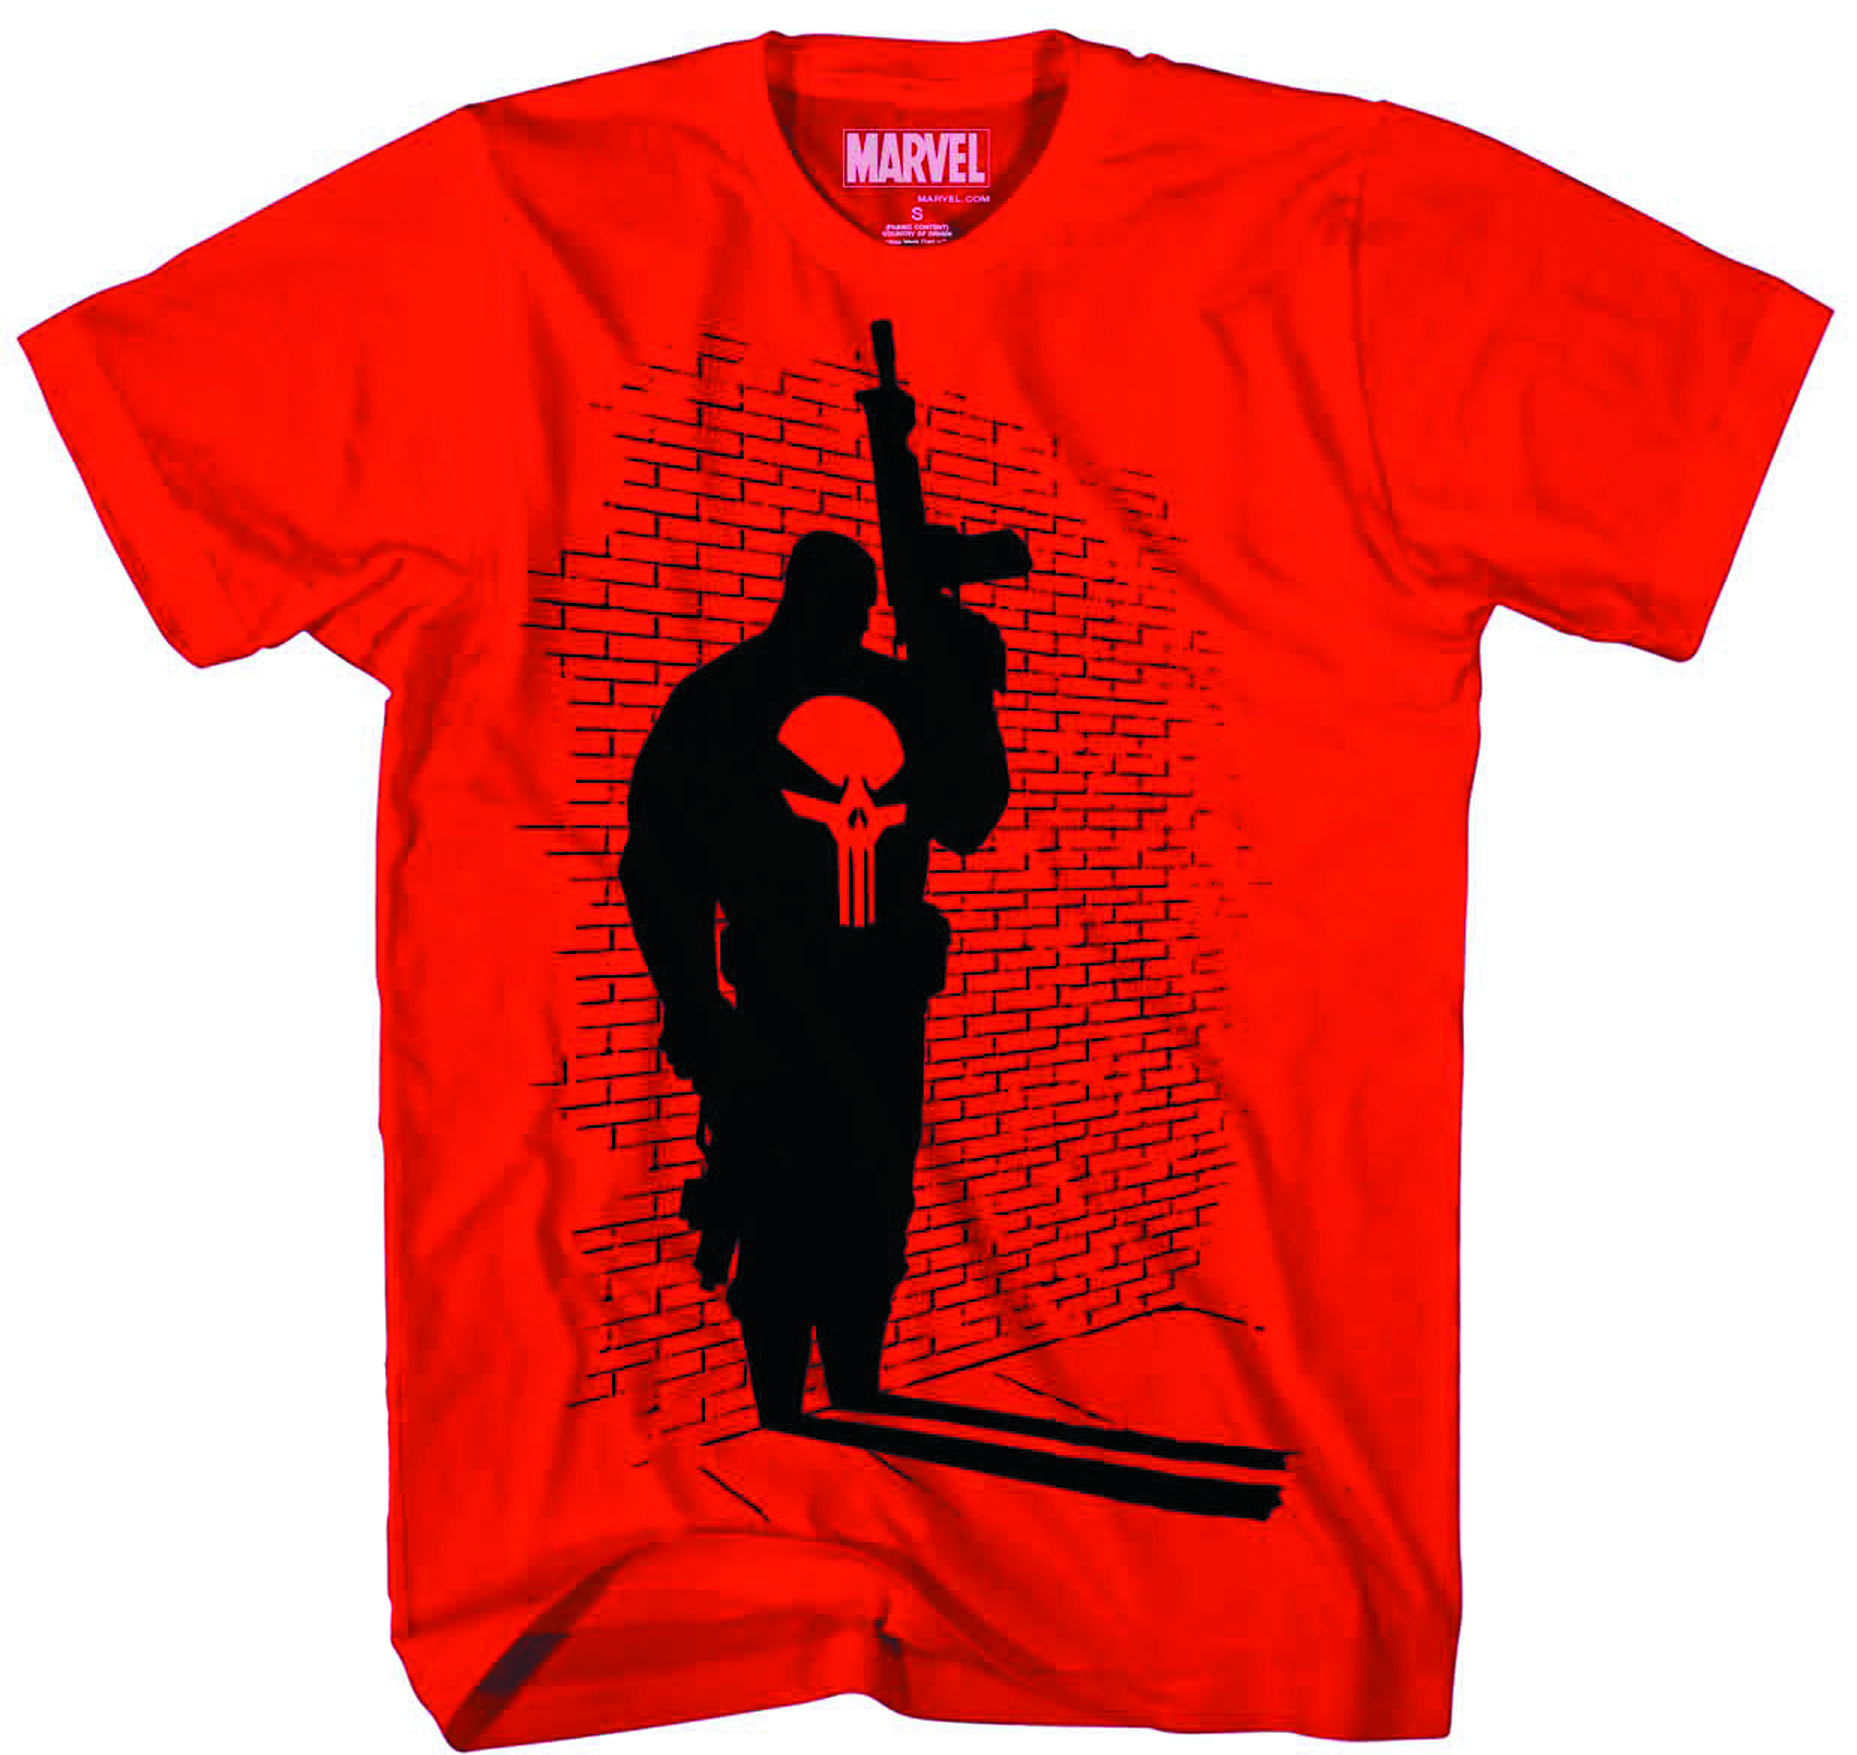 PUNISHER OFF CAMERA PX RED T/S XL